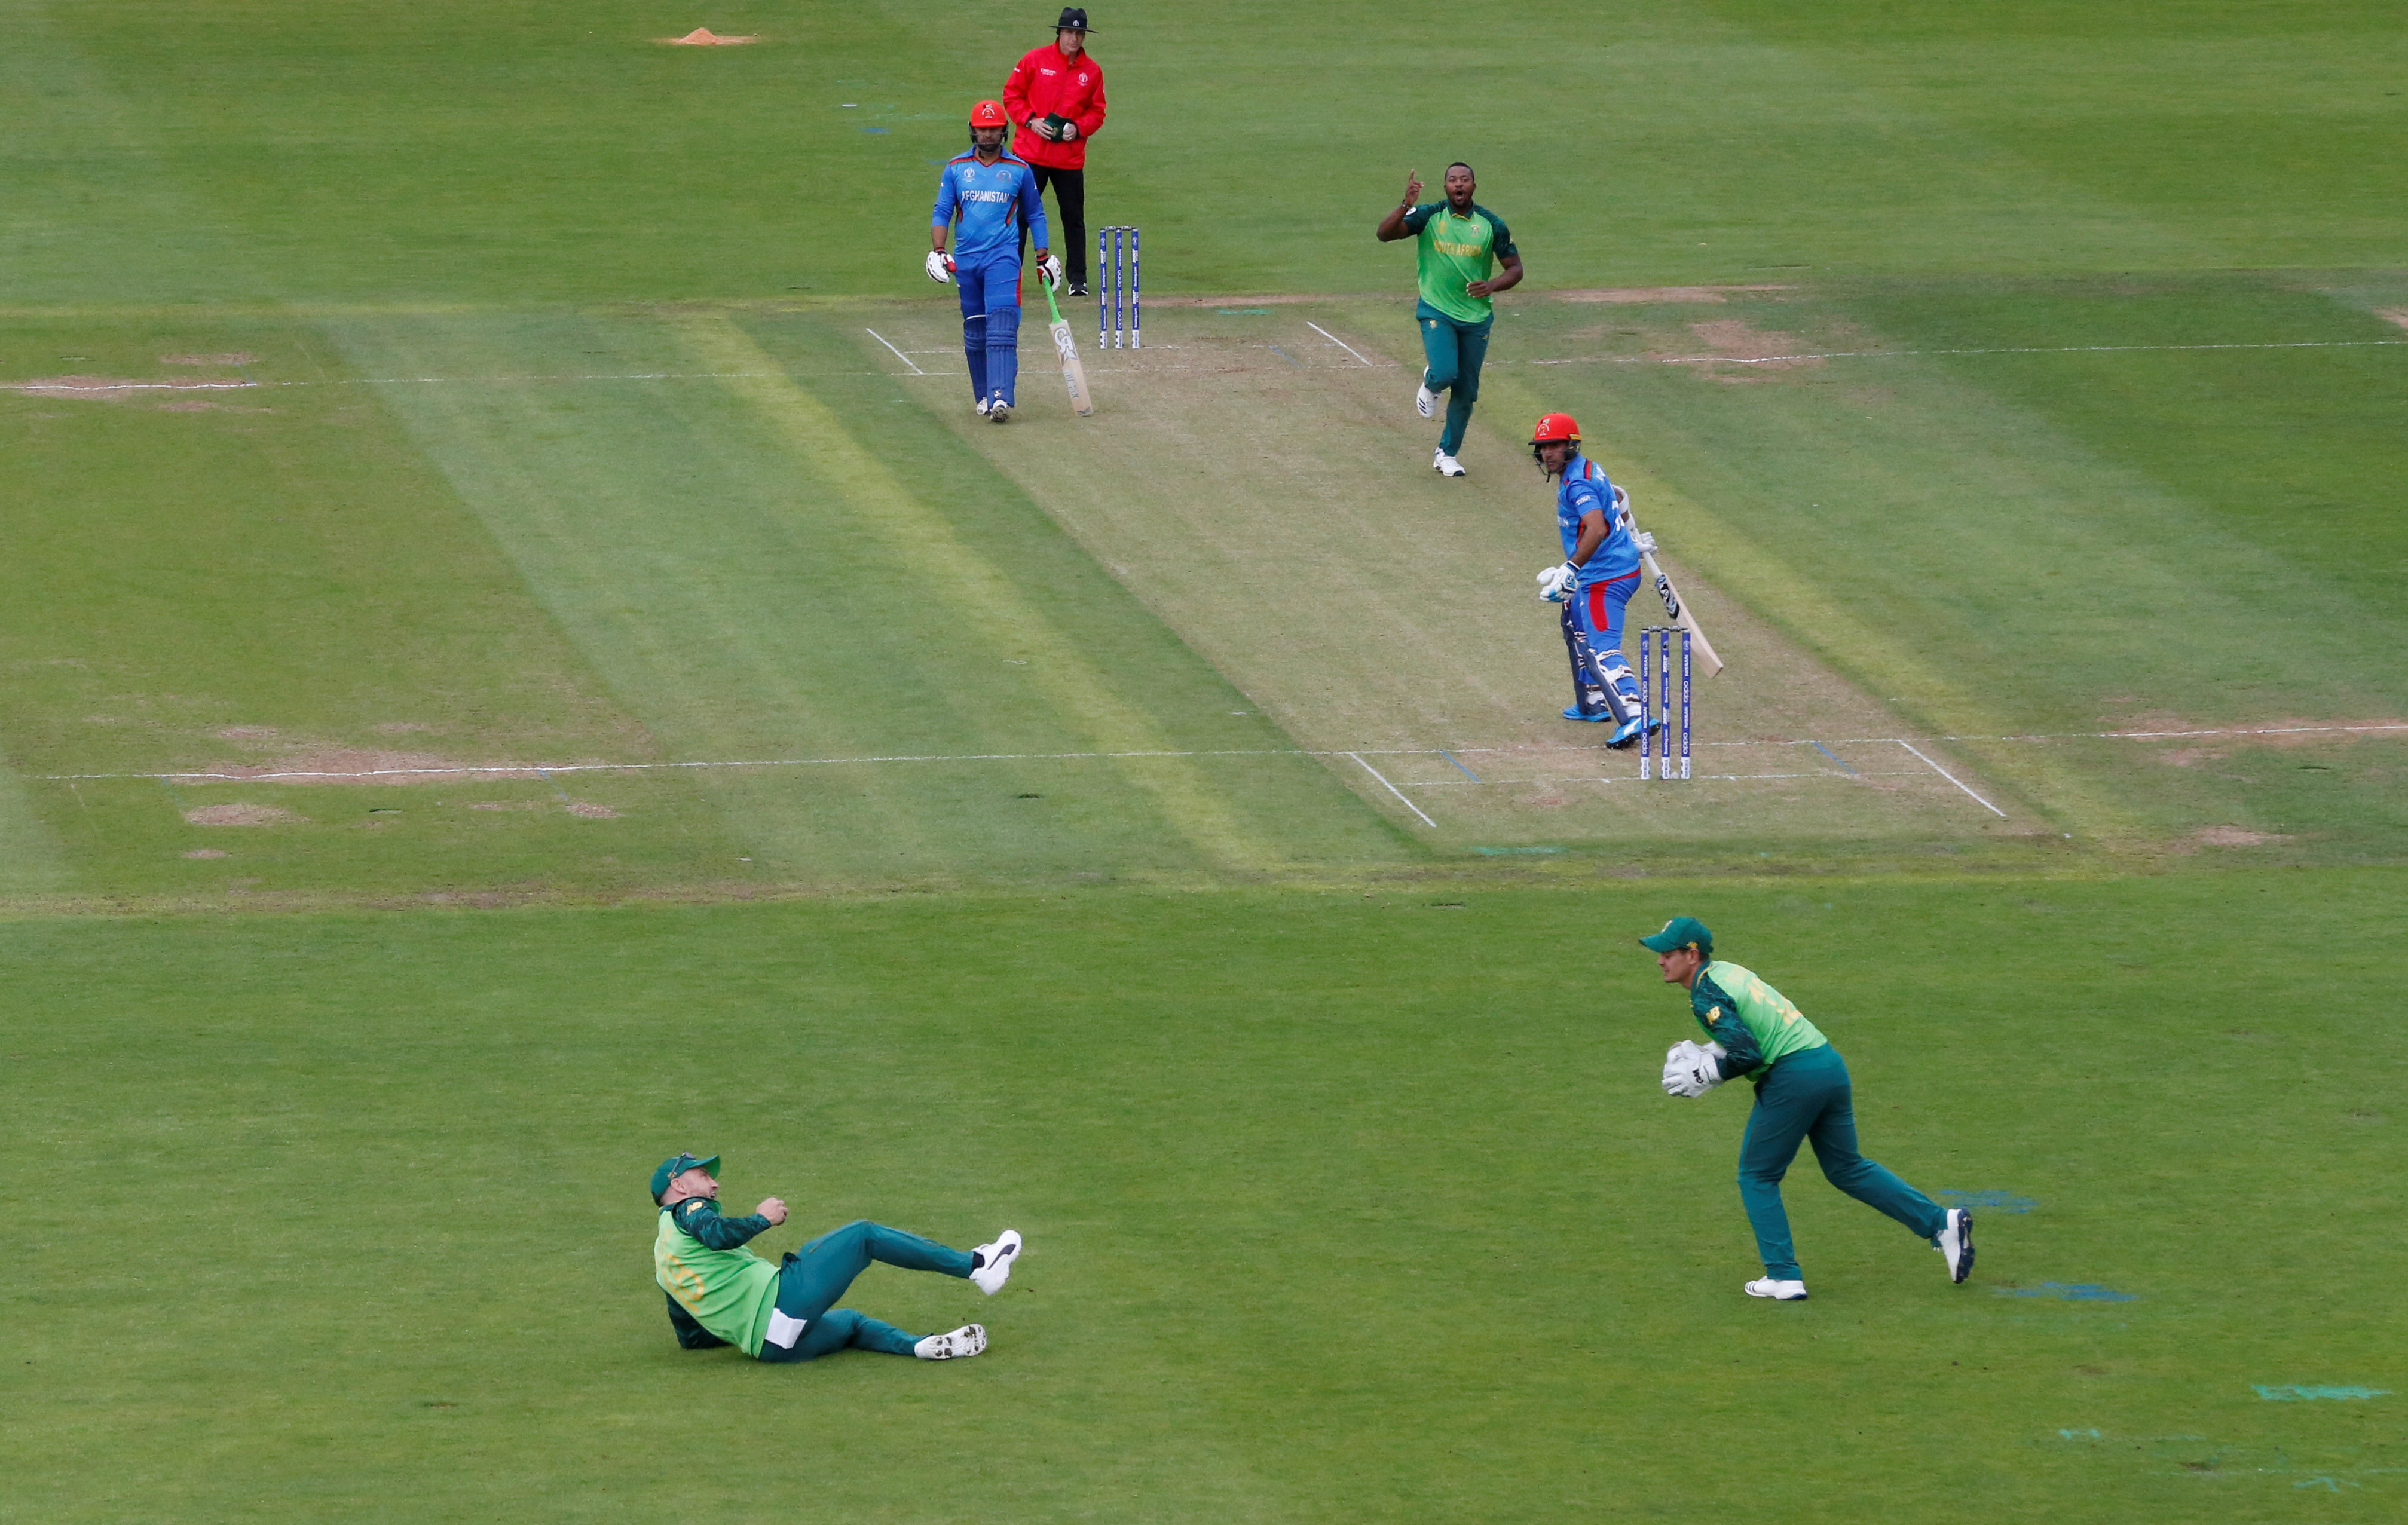 World Cup 2019: Afghanistan vs South Africa